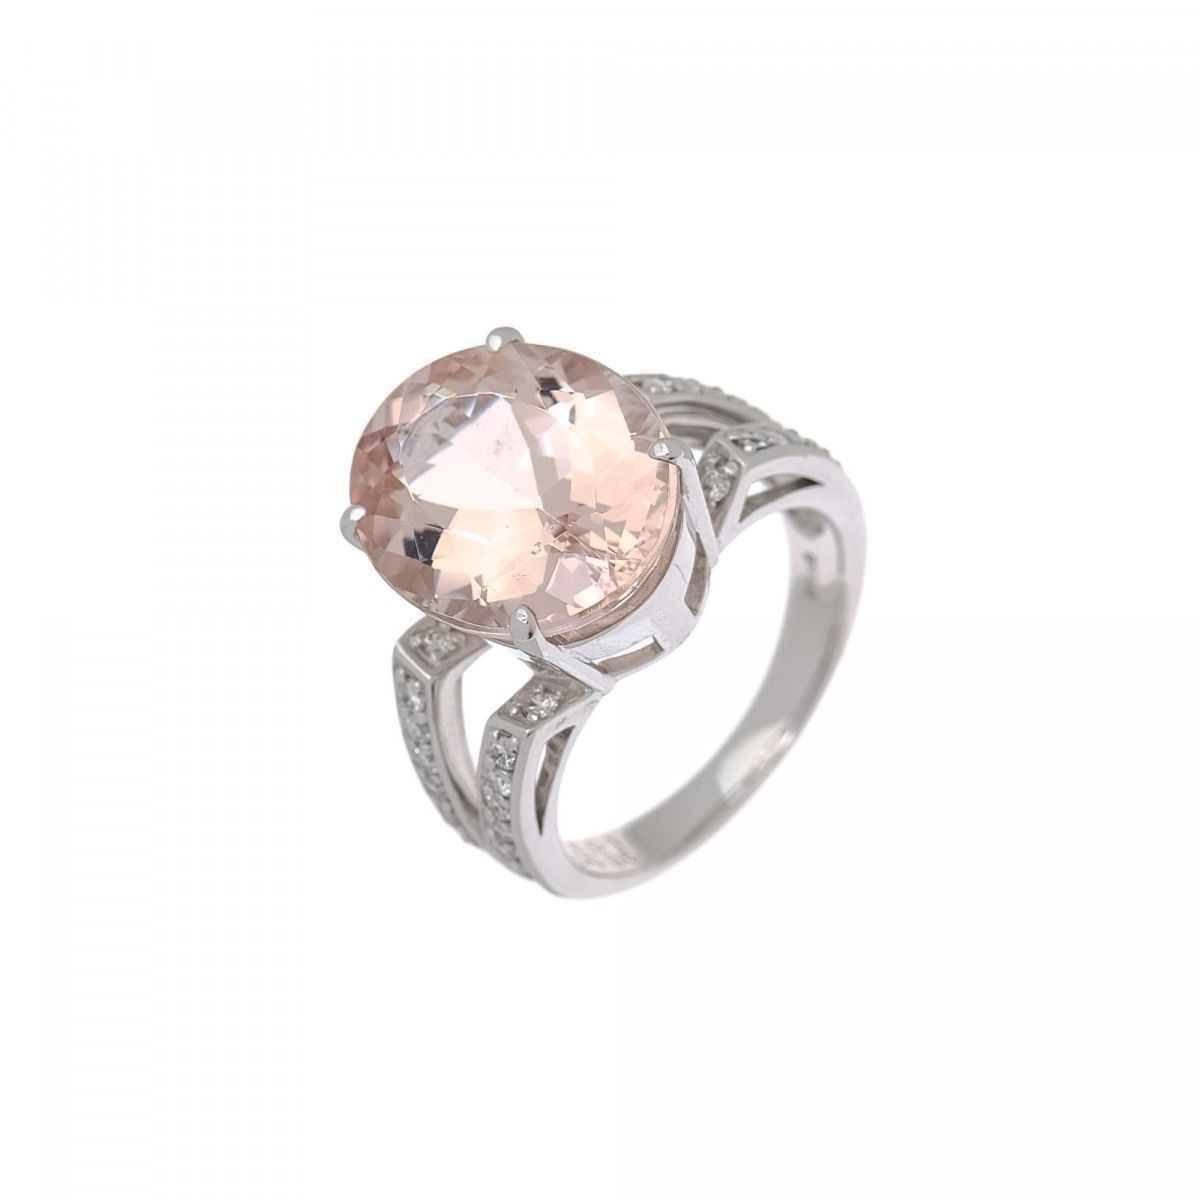 halo astley morganite ring uk solid gold rose tearoom diamond clarke